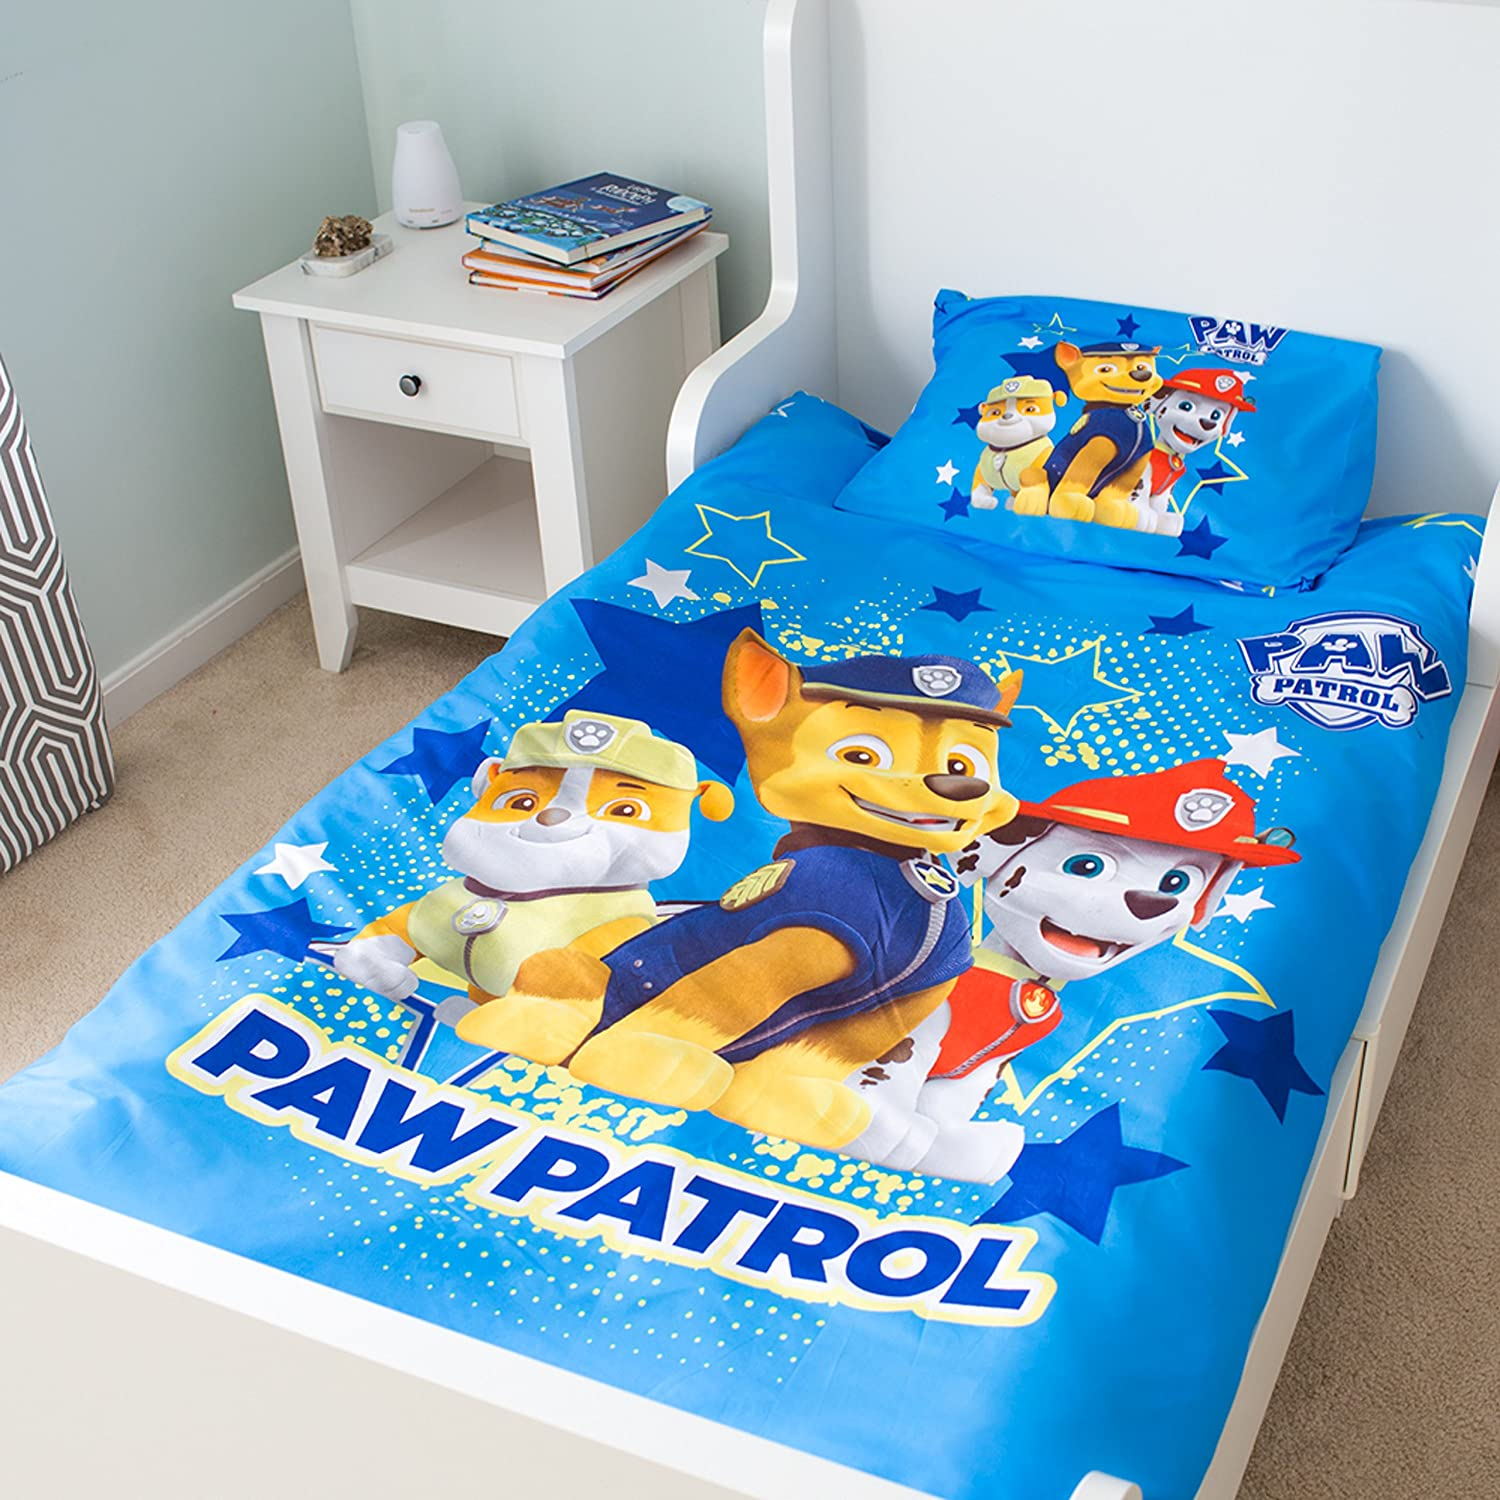 Nick Jr Paw Patrol 55 by 78-Inch Duvet Cover with Pillow cover, Twin